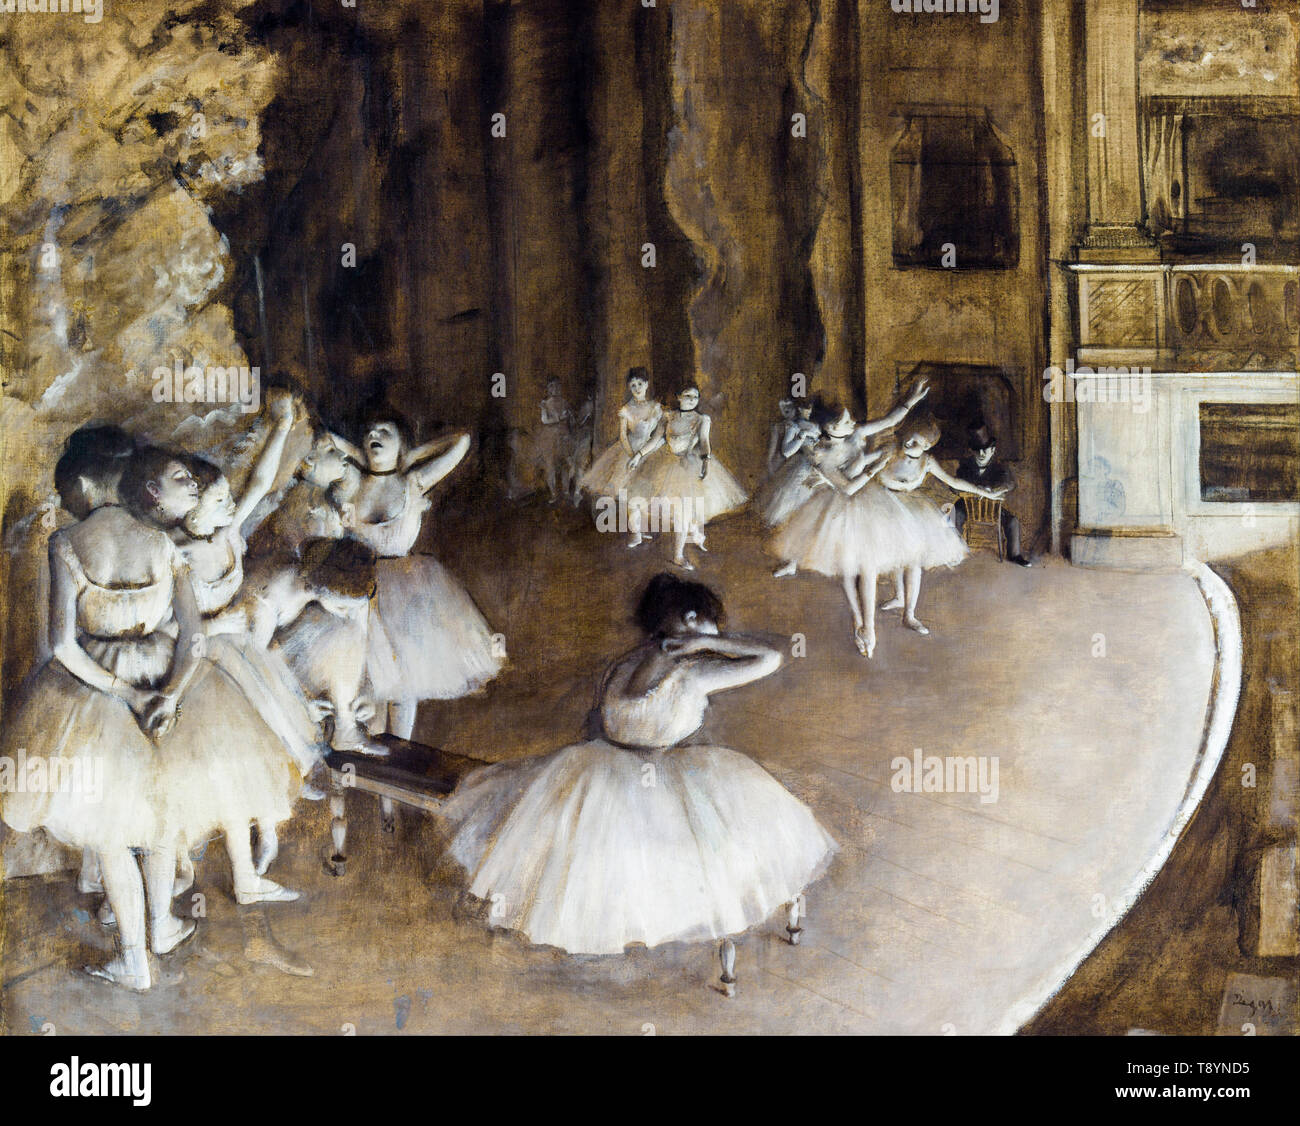 The Ballet Rehearsal on Stage, painting by Edgar Degas, 1874 - Stock Image